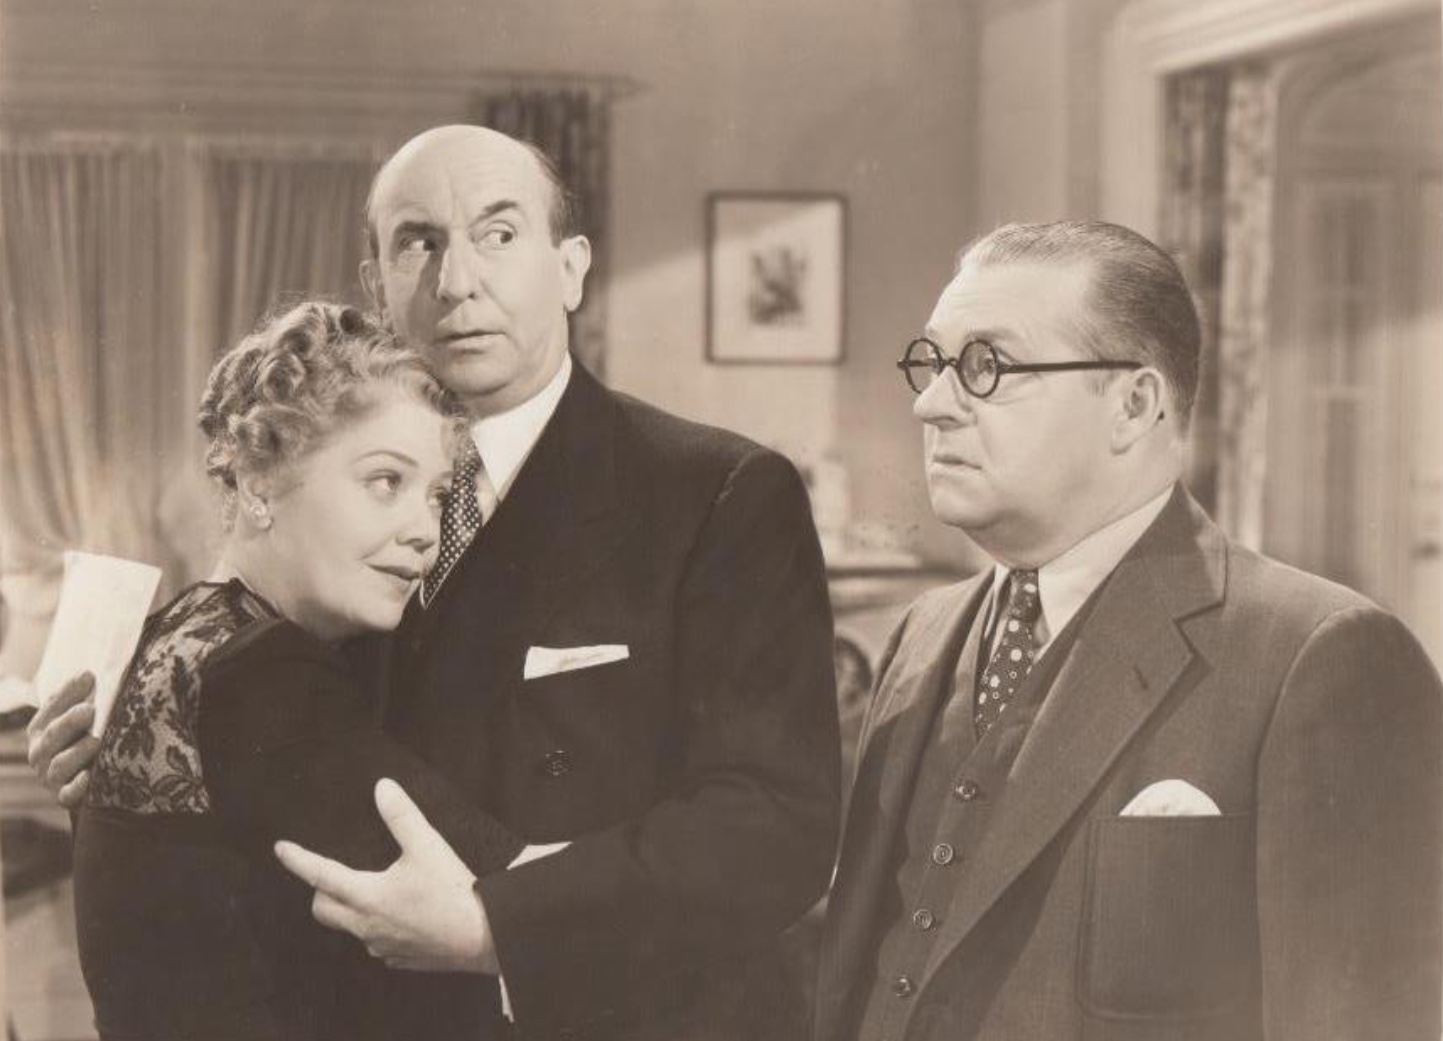 Spring Byington, Jed Prouty, and Andrew Tombes in Too Busy to Work (1939)